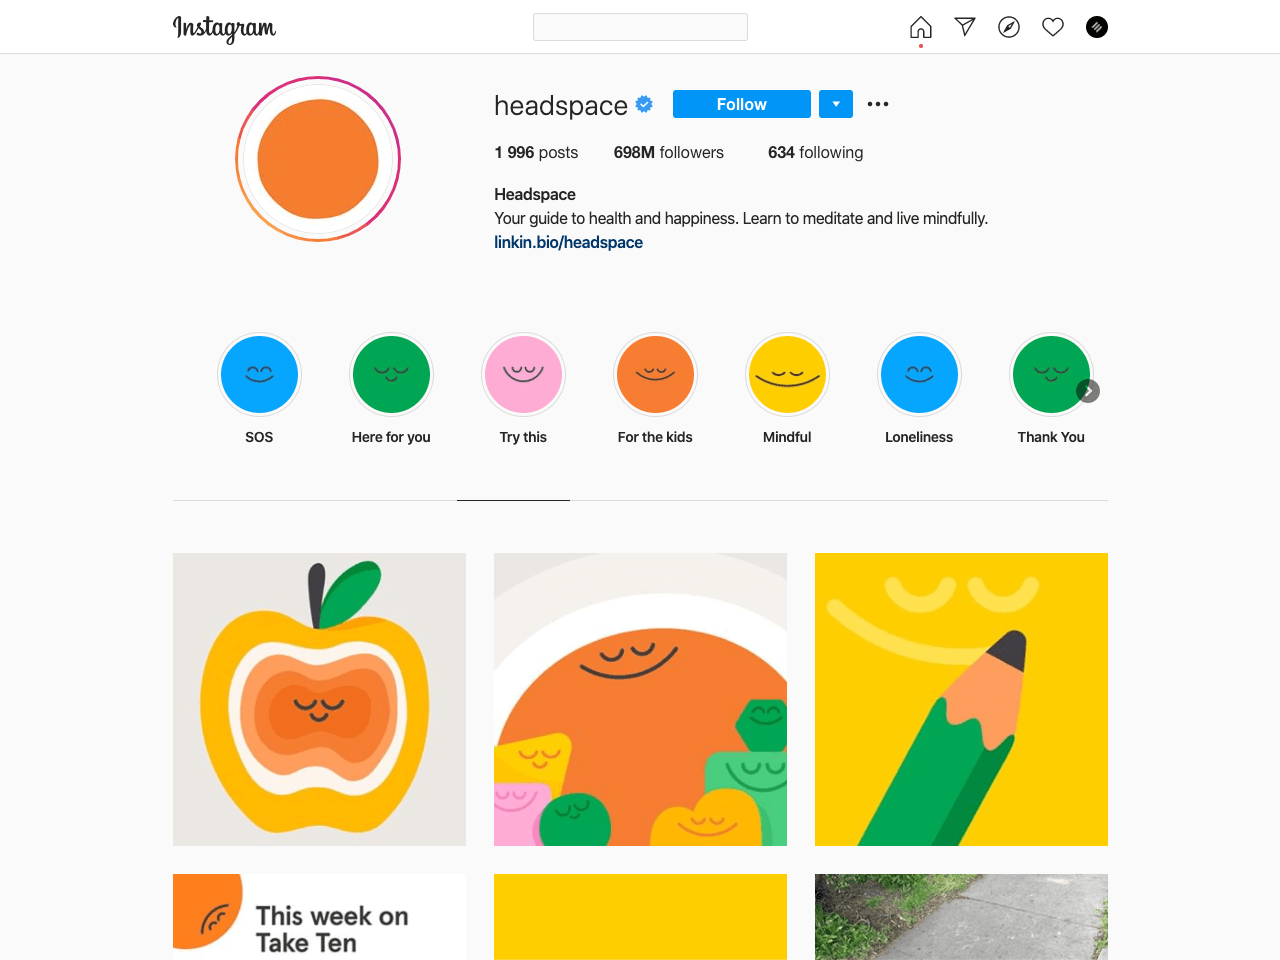 Headspaces crafts their Instagram bio with the focus on the value their app brings